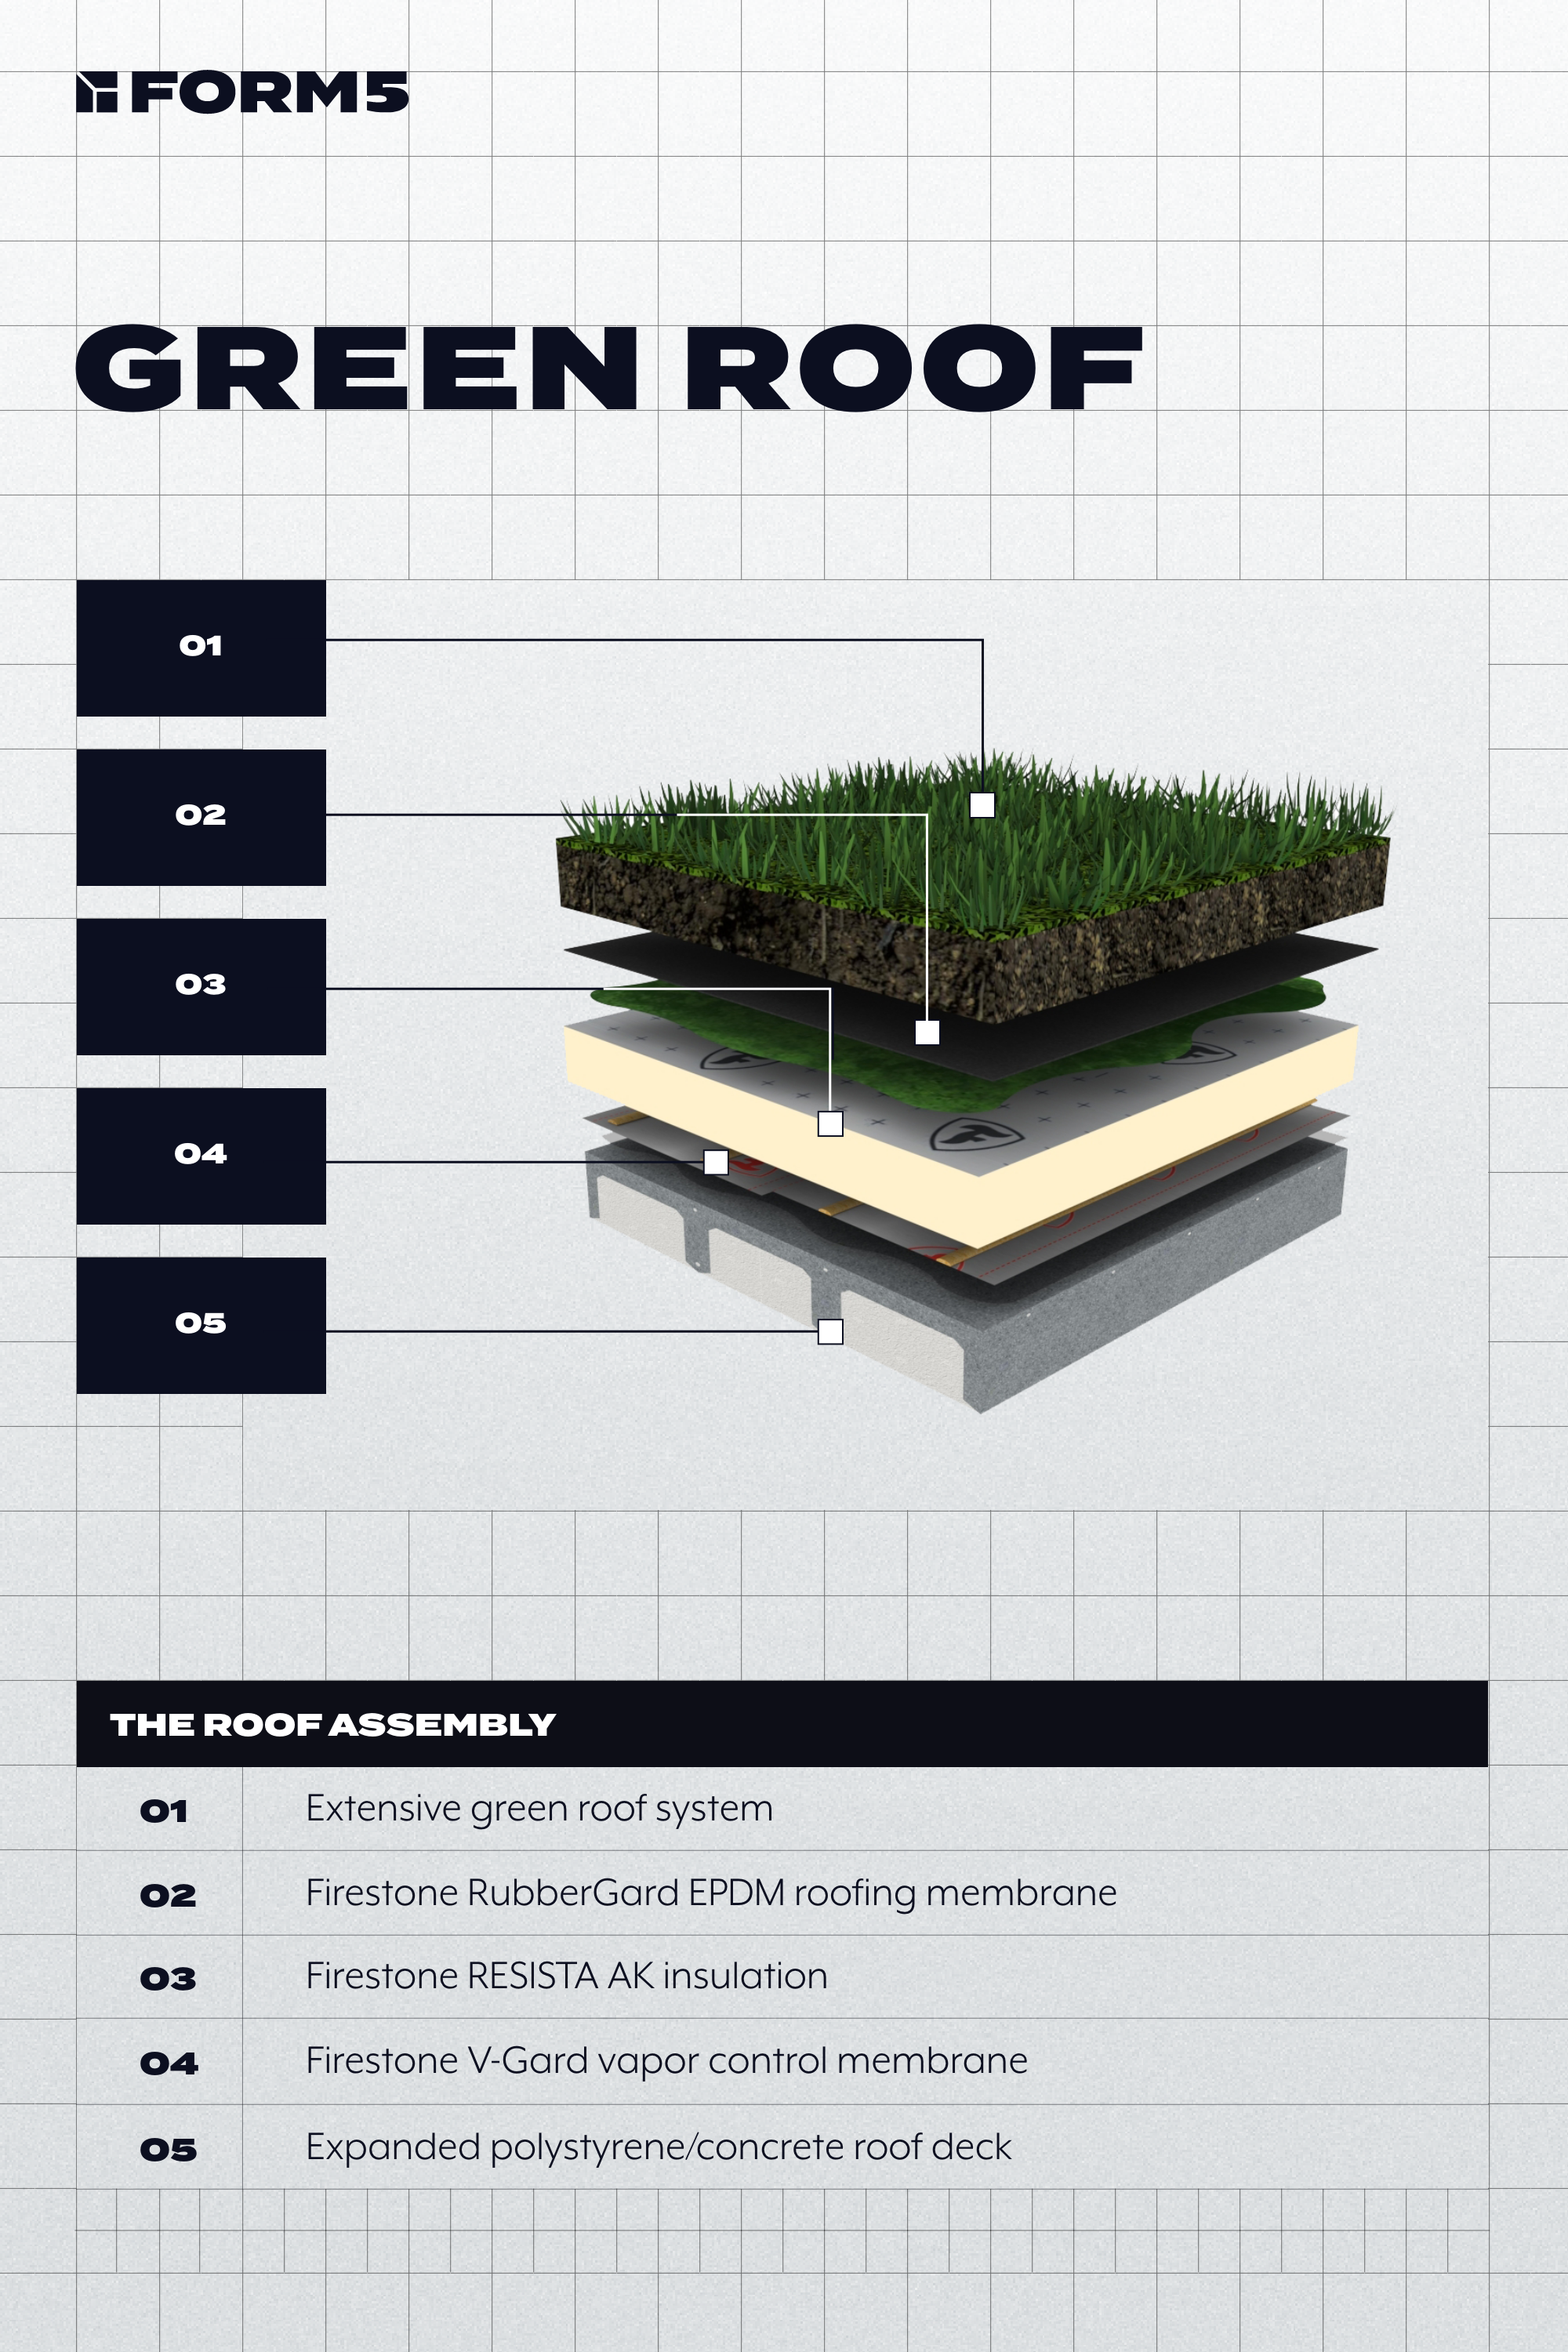 Epdm Based Green Roof In 2020 Green Roof Beach House Design Green Roof System